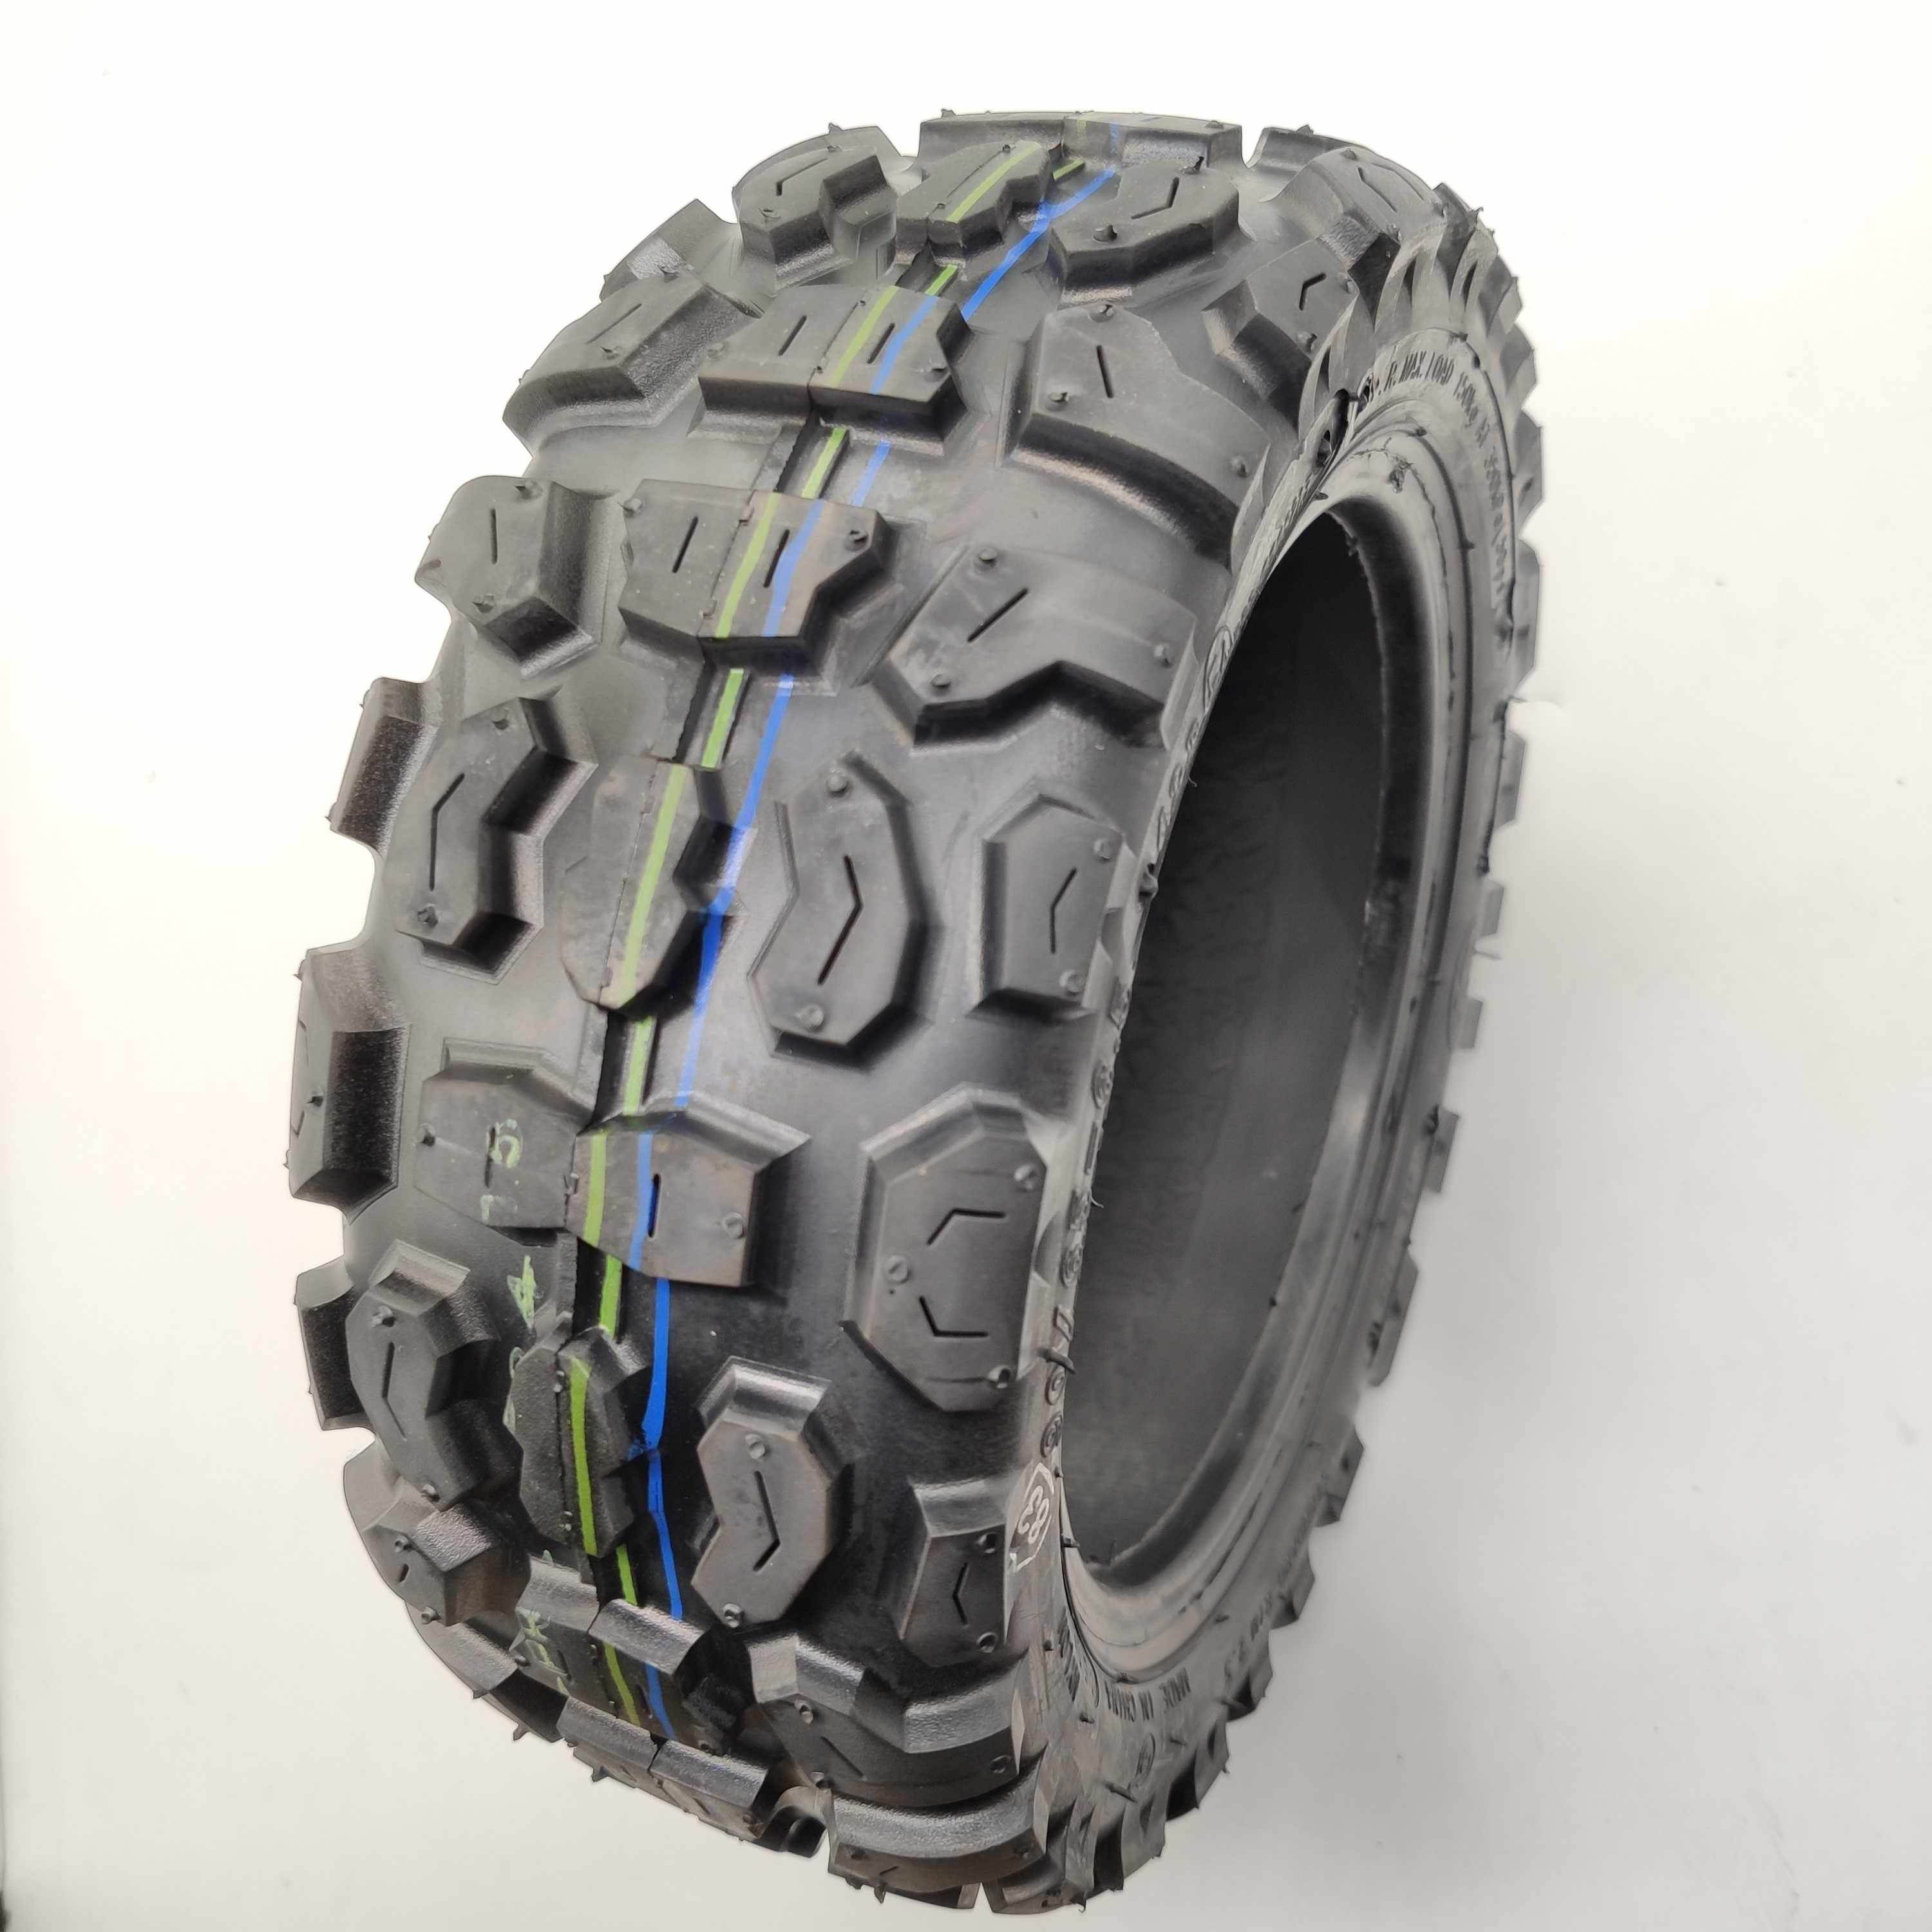 11 inch Luchtband voor Elektrische Scooter Dualtron Ultra binnenband offroad road charmeur charmeur camera